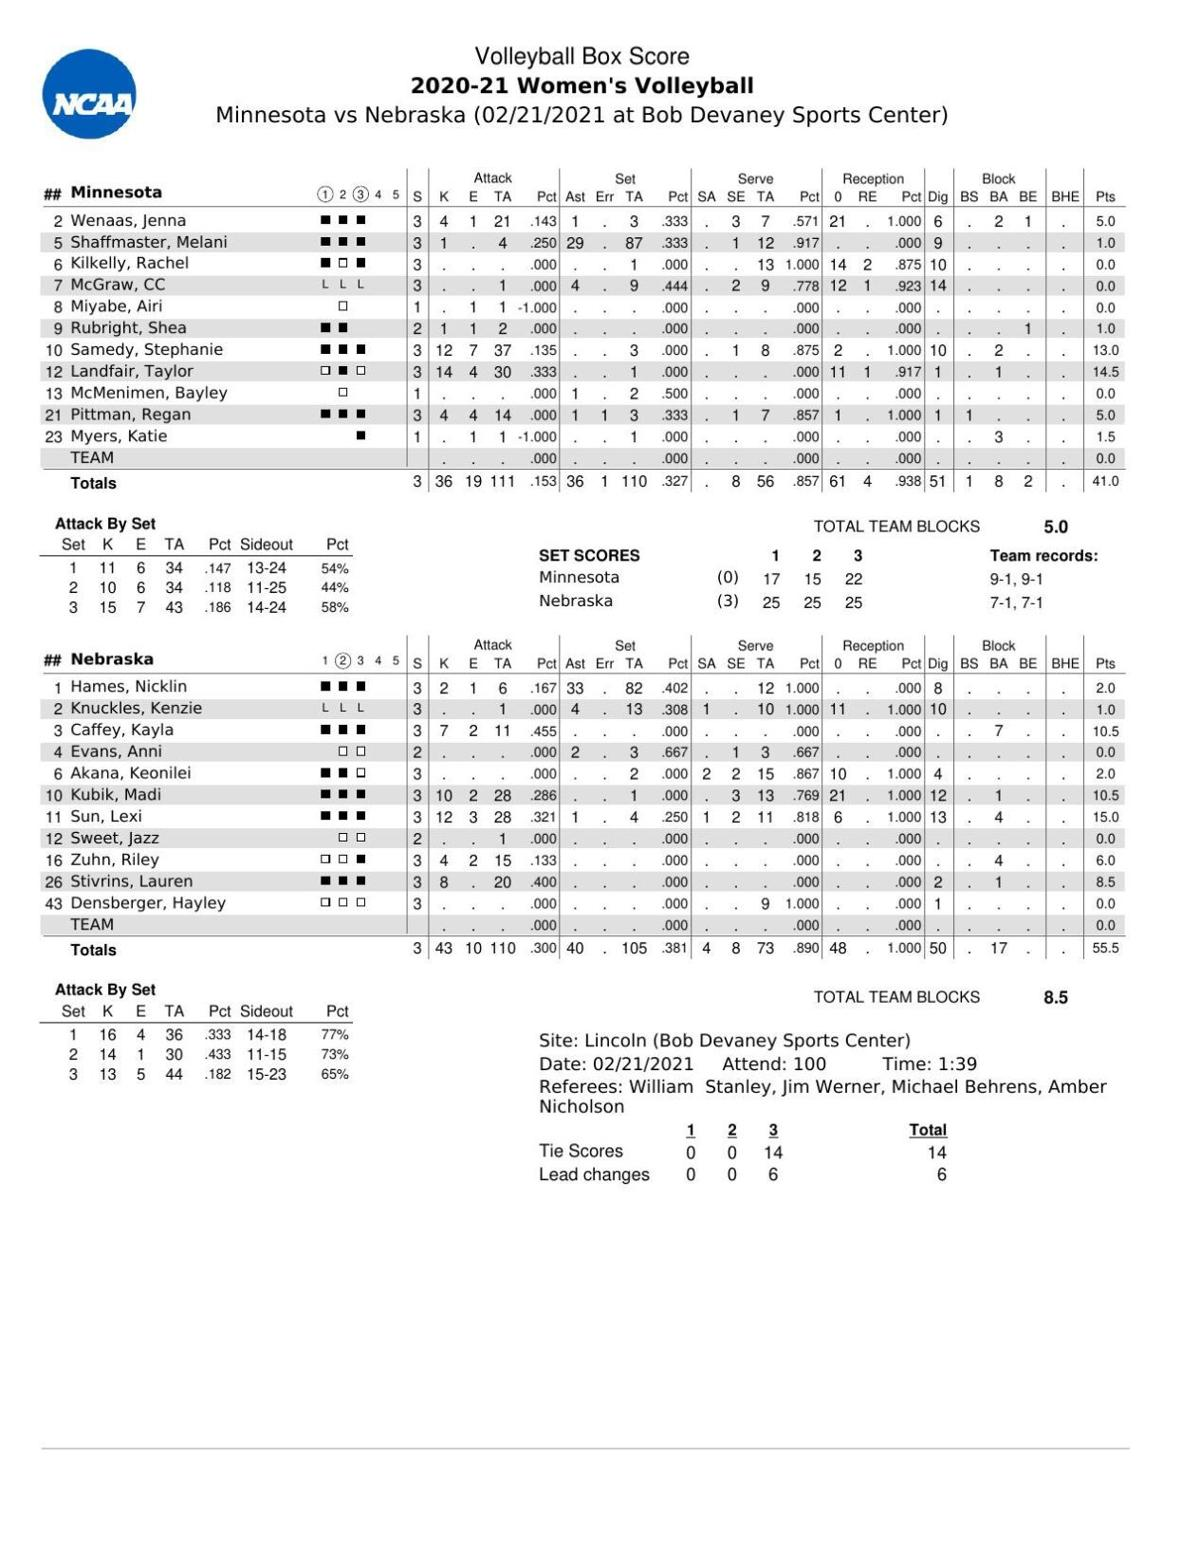 Box: Nebraska 3, Minnesota 0